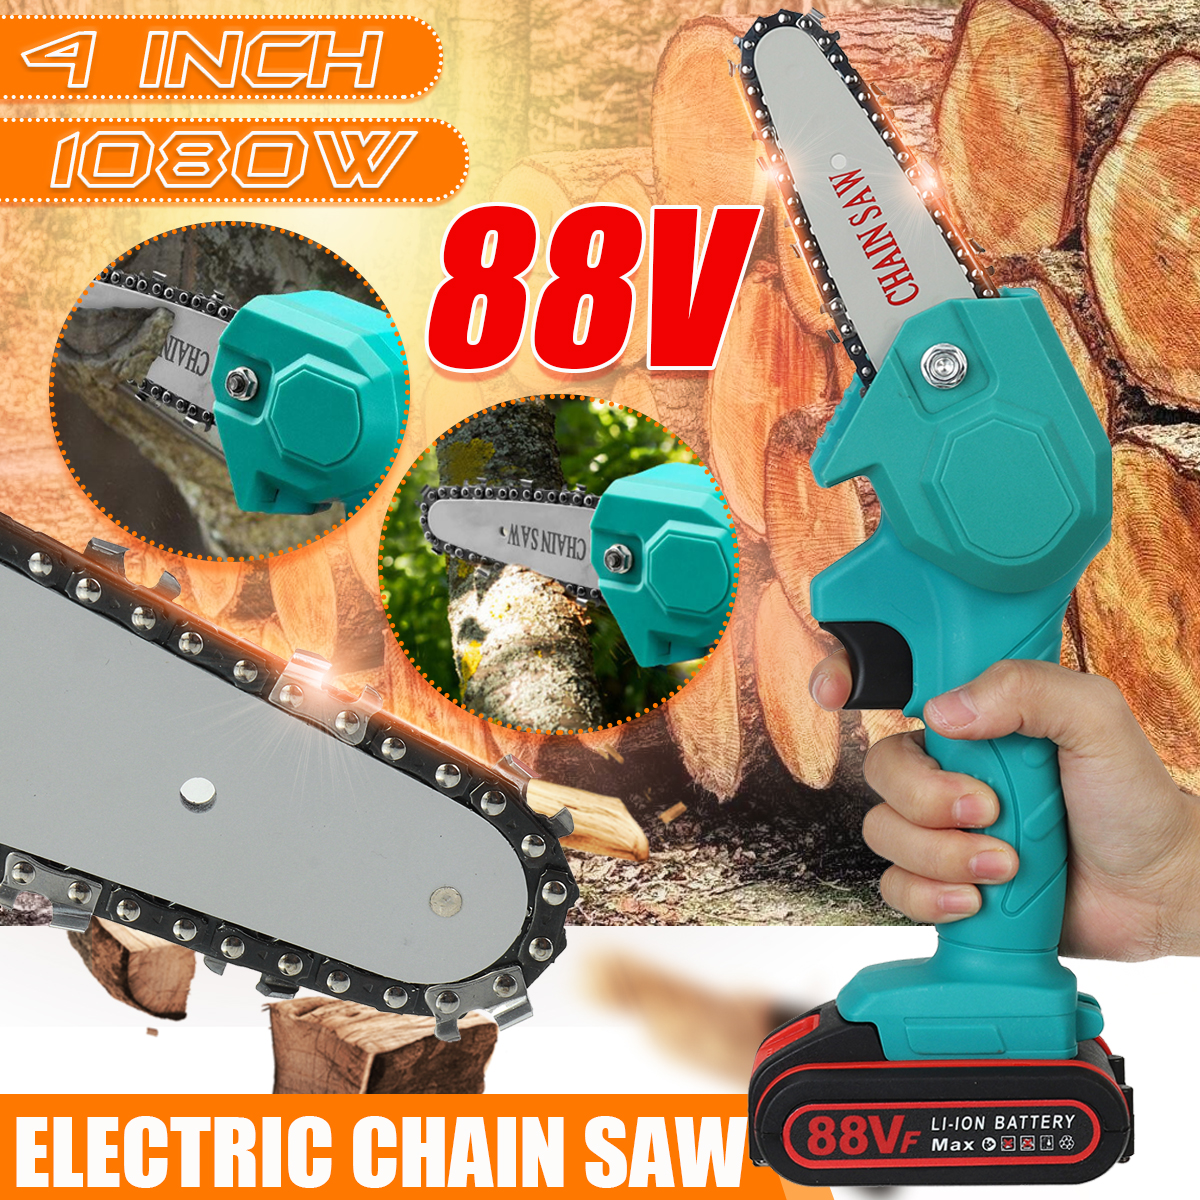 88V 1080W 4 Inch Mini Electric Chain Saw With 2 Battery Rechargeable Woodworking Pruning One-handed Garden Logging Power Tool